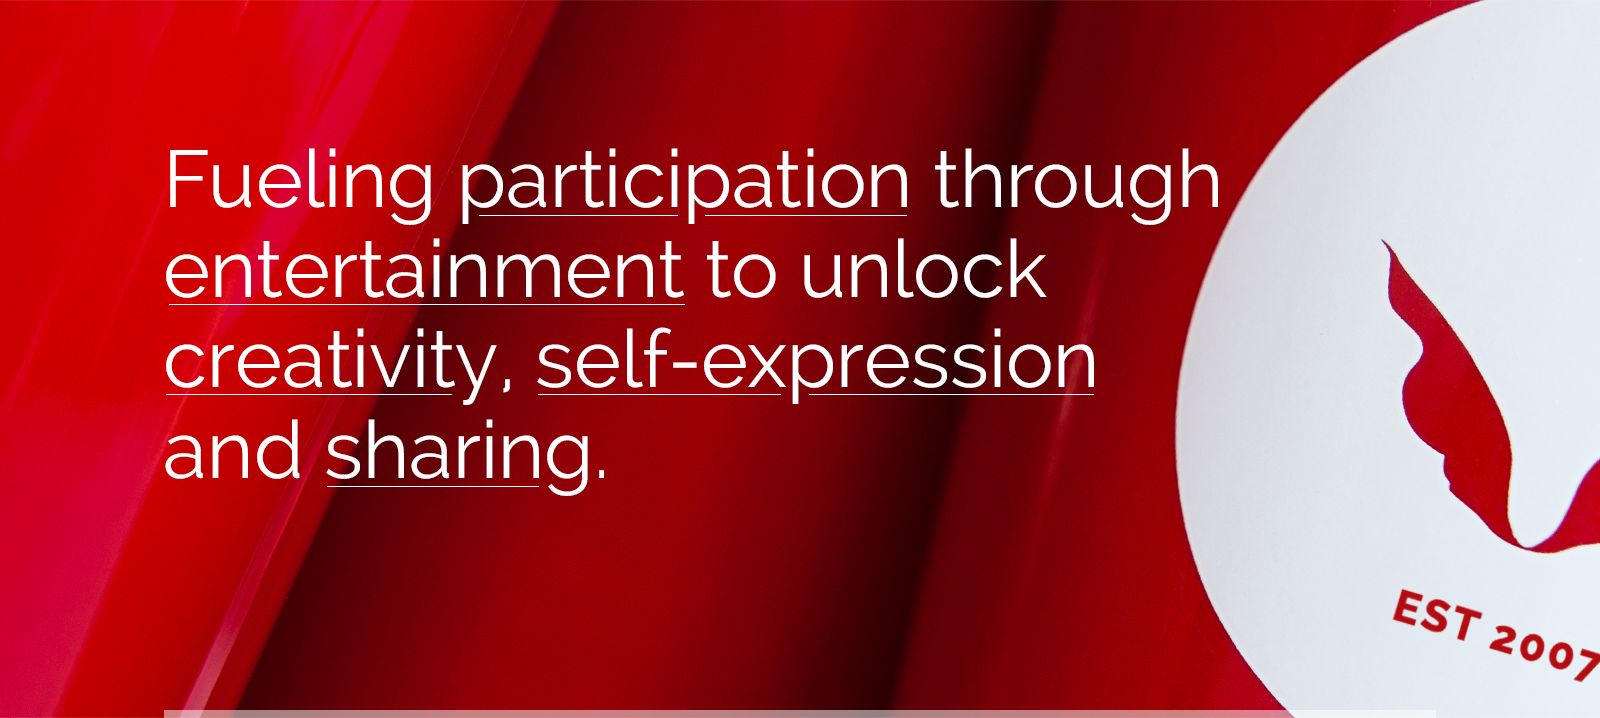 Fueling participation through entertainment to unlock creativity, self-expression and sharing.